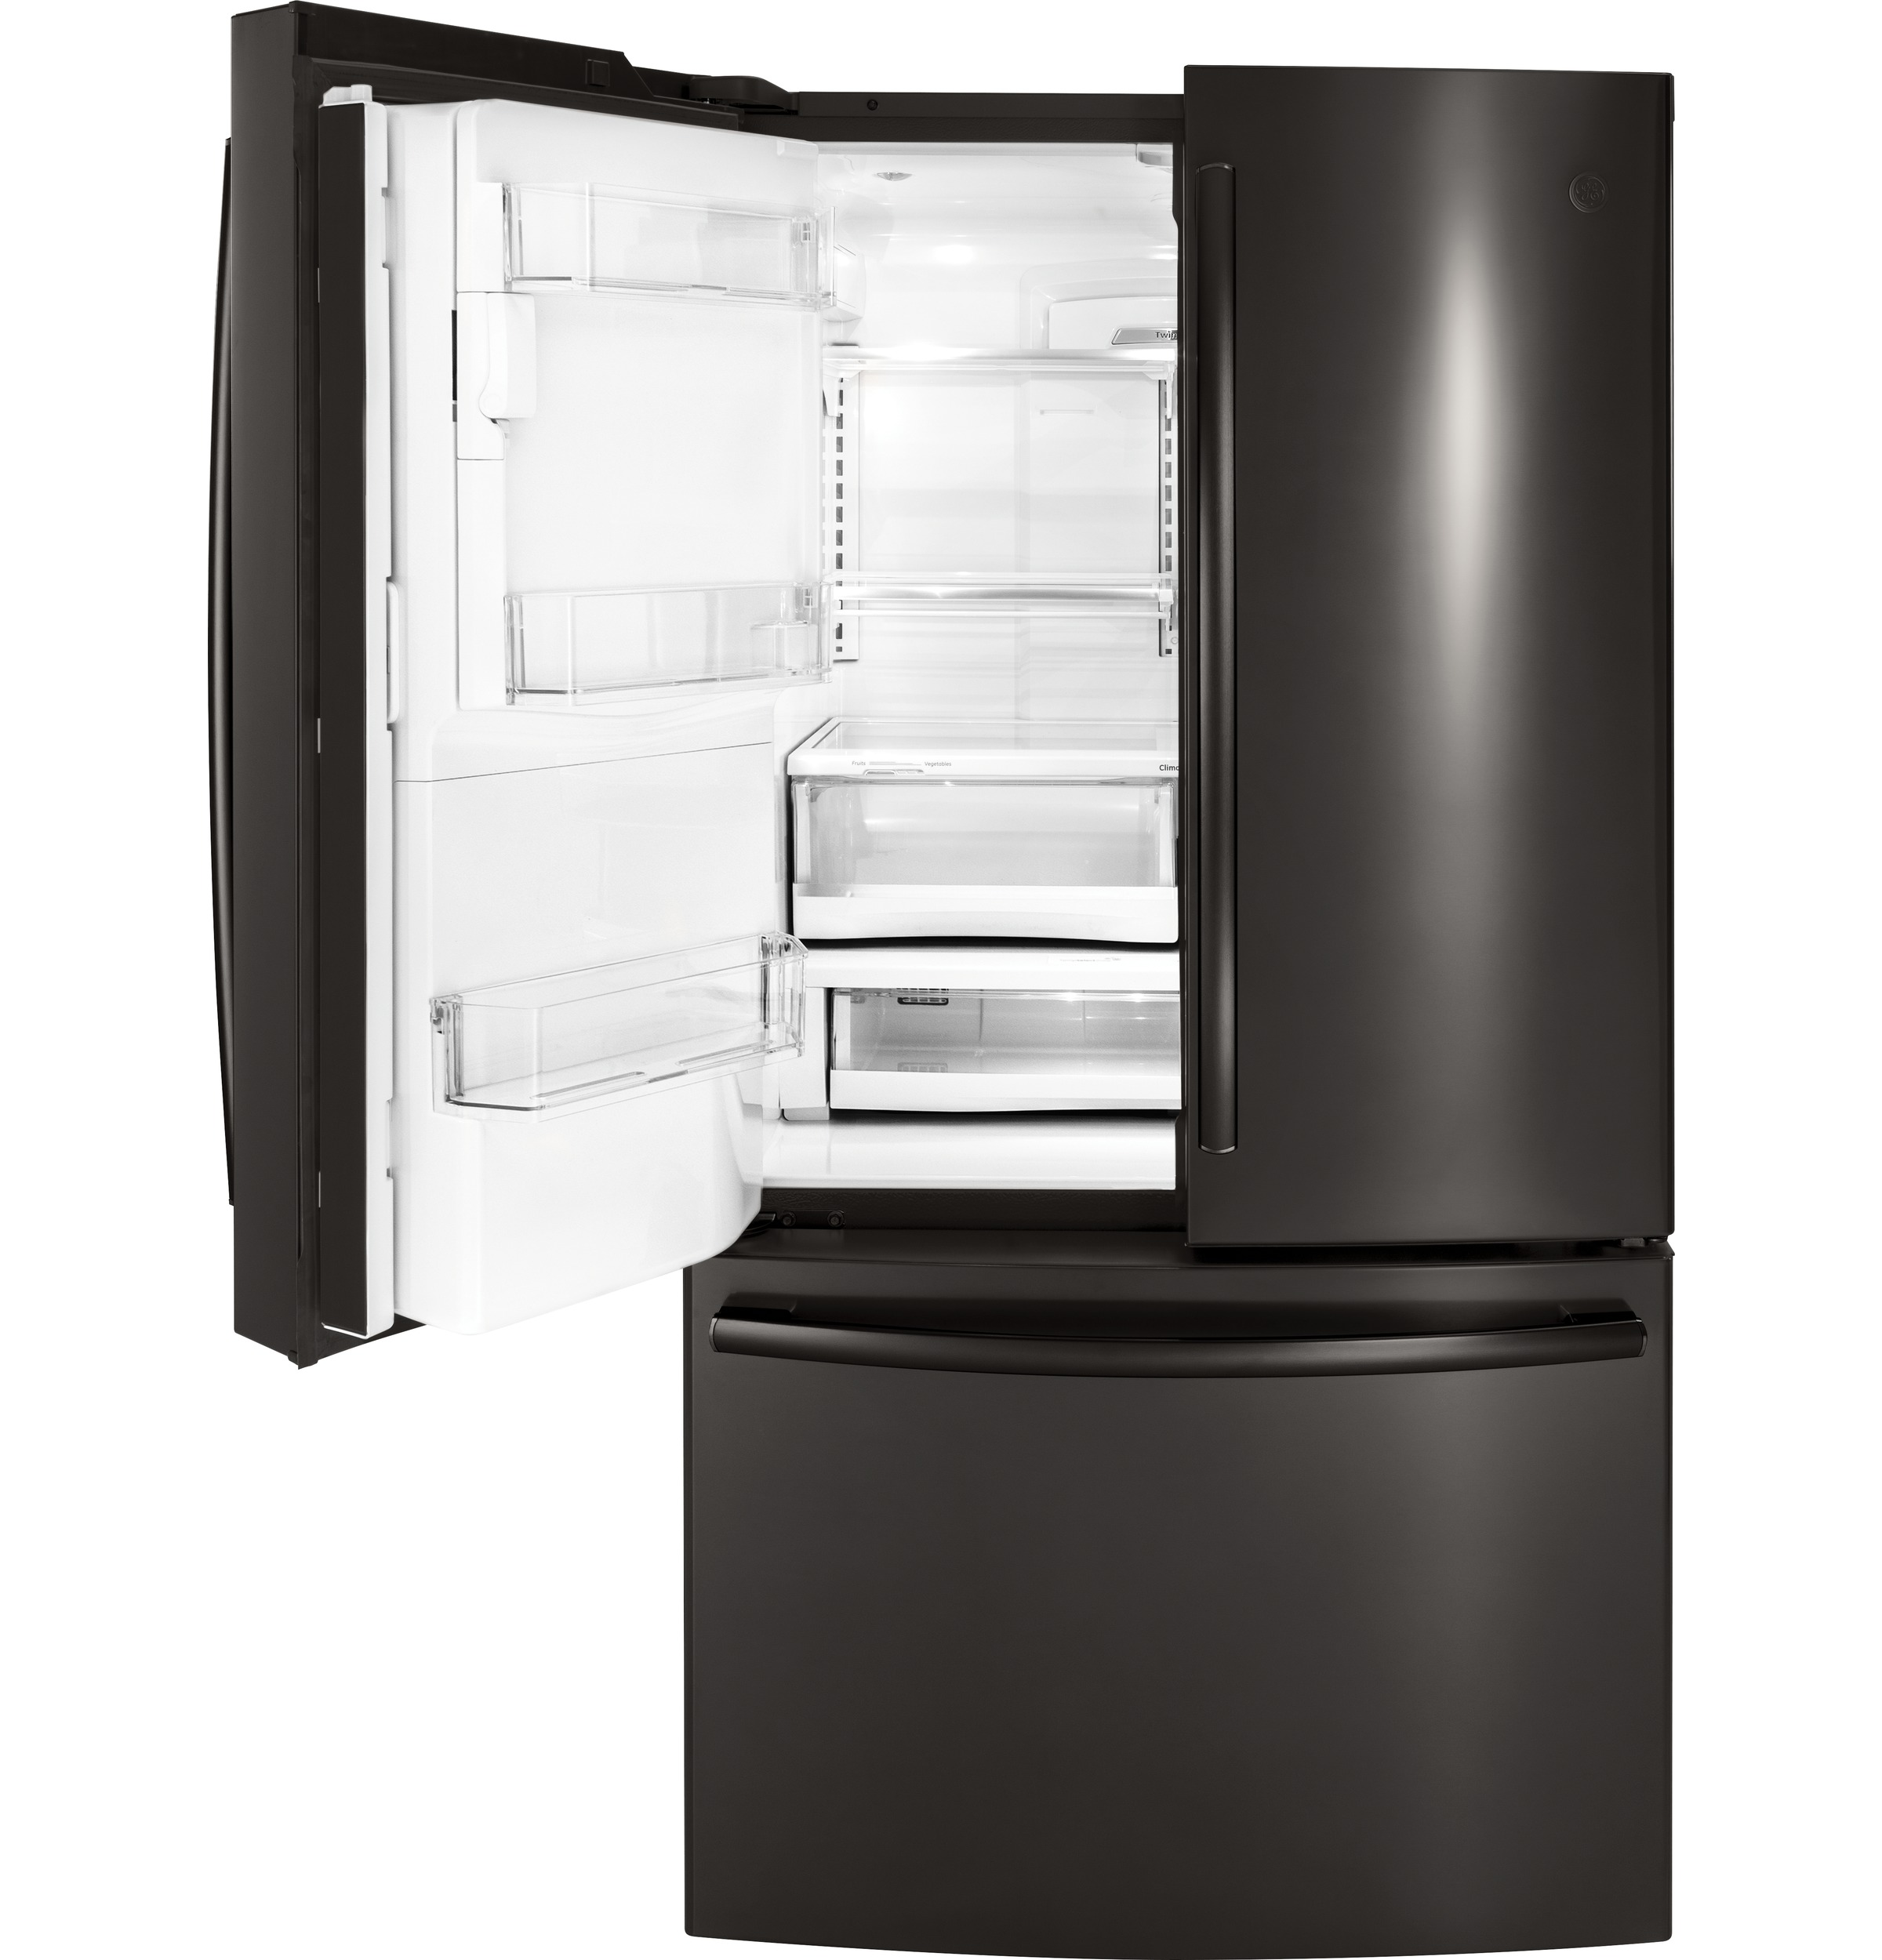 Model: PYE22PBLTS | GE Profile™ Series ENERGY STAR® 22.2 Cu. Ft. Counter-Depth French-Door Refrigerator with Keurig® K-Cup® Brewing System